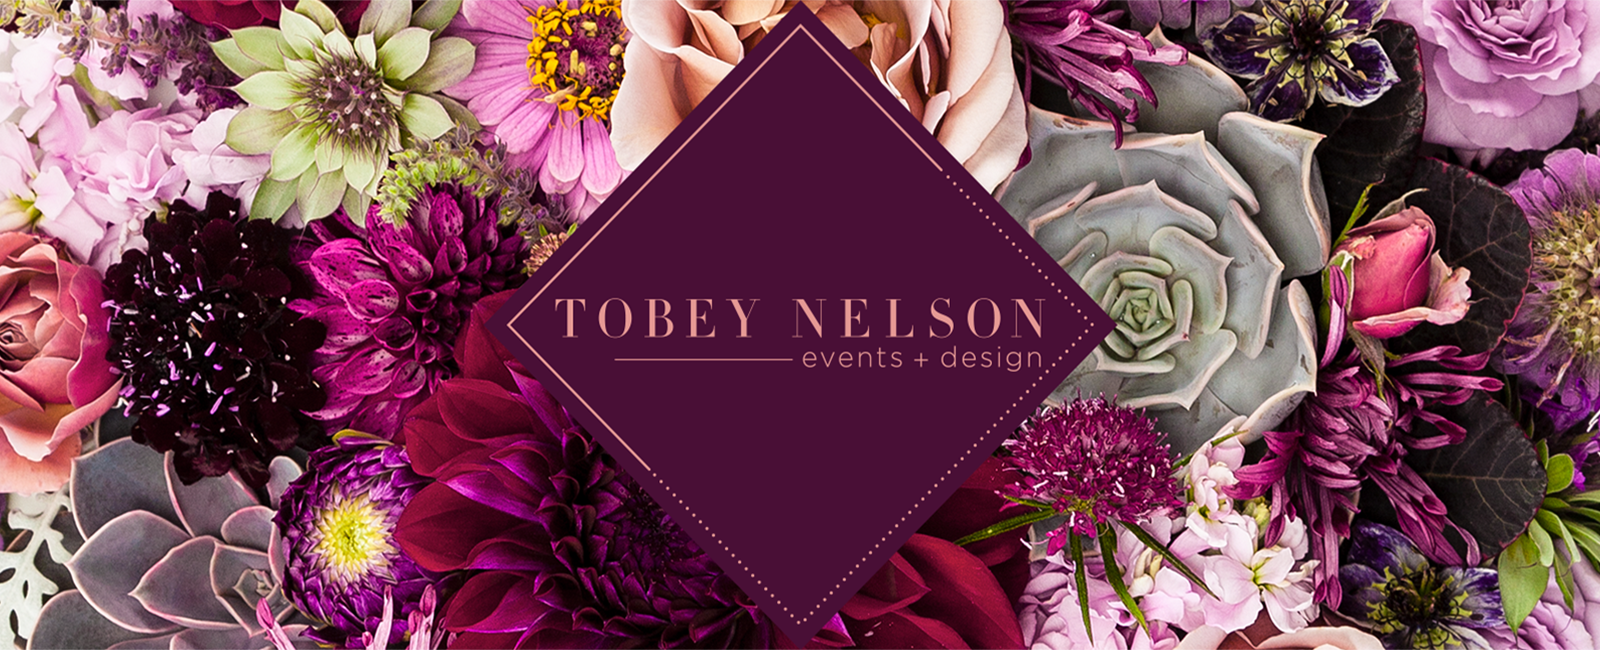 lush and beautiful floral arrangements by tobey nelson events & design for whidbey island weddings